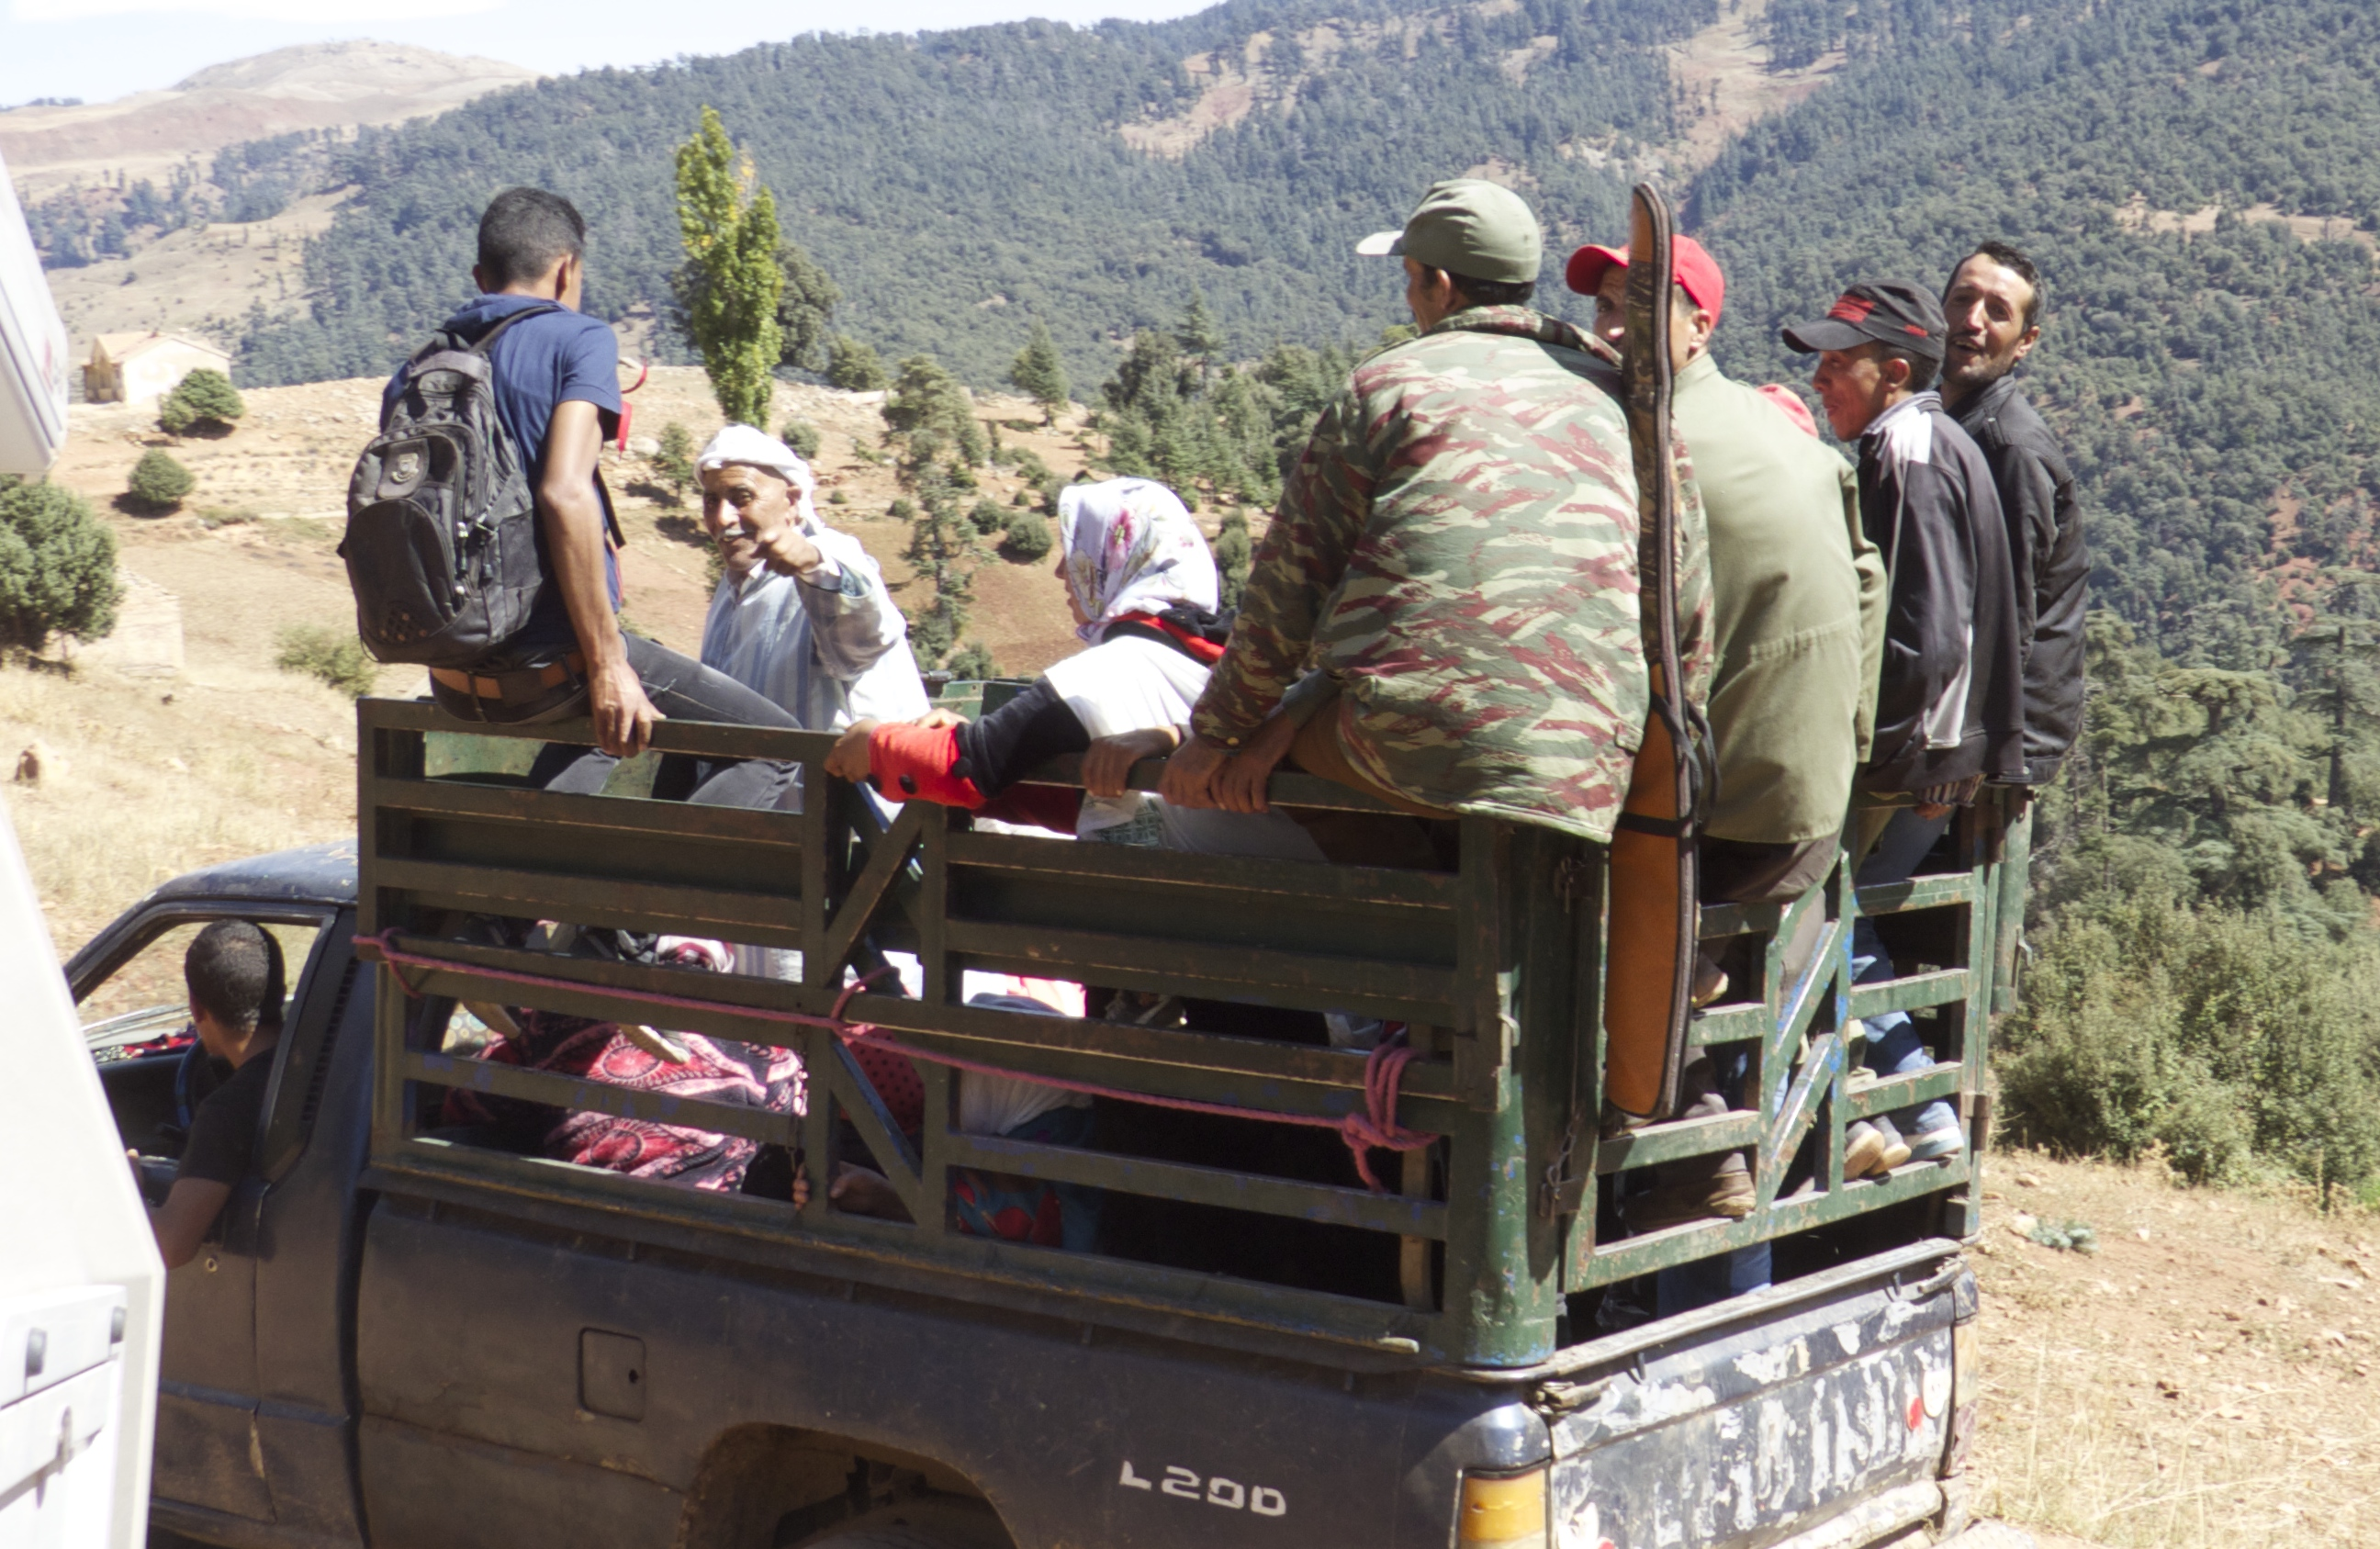 Not sure why they needed the rifle!!!